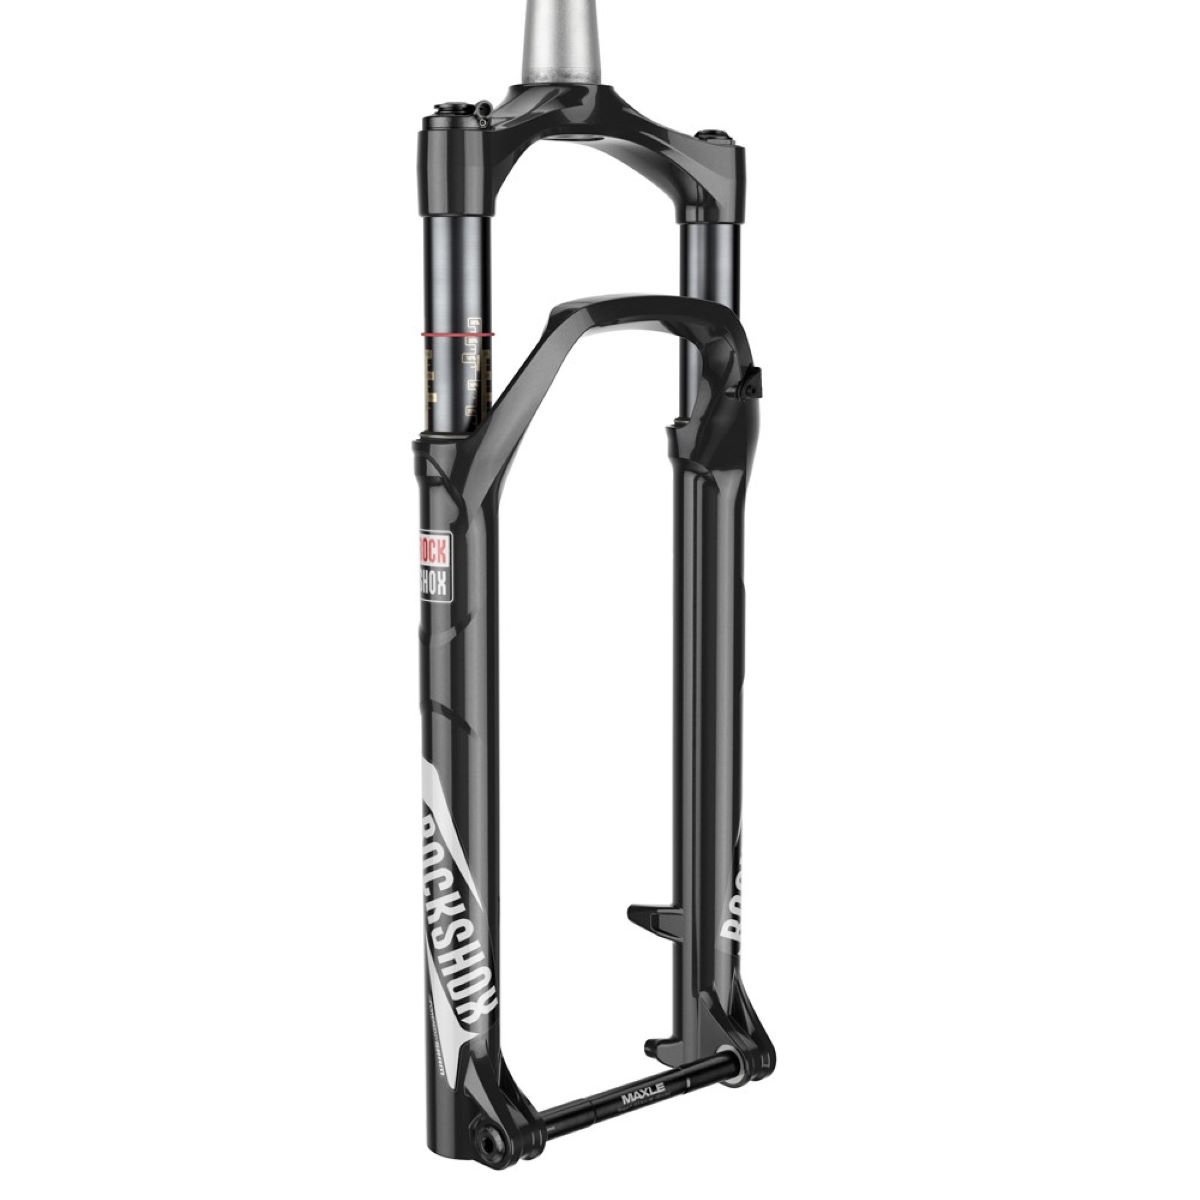 Fourche RockShox Bluto - 26'' Noir Fourches à suspension